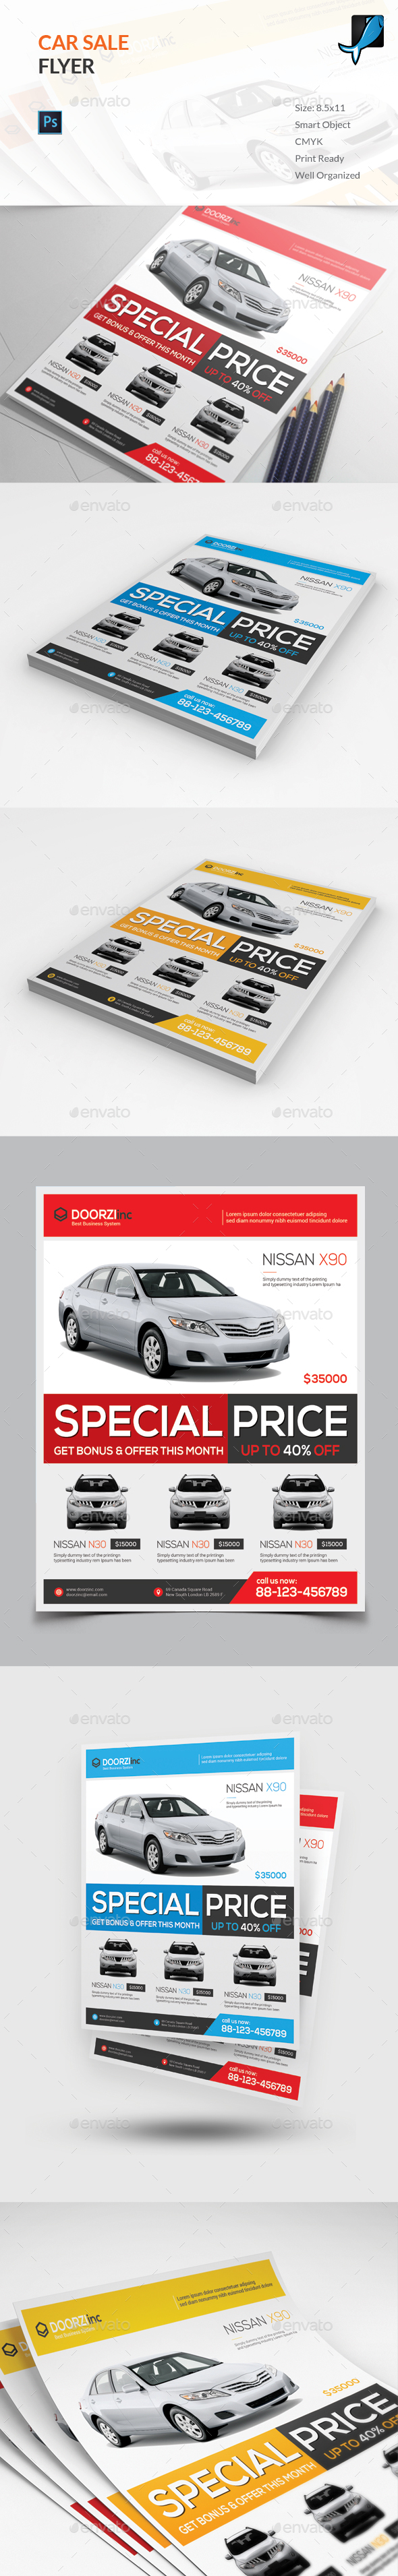 Car Flyer Graphics Designs Templates from GraphicRiver – Car Sale Flyer